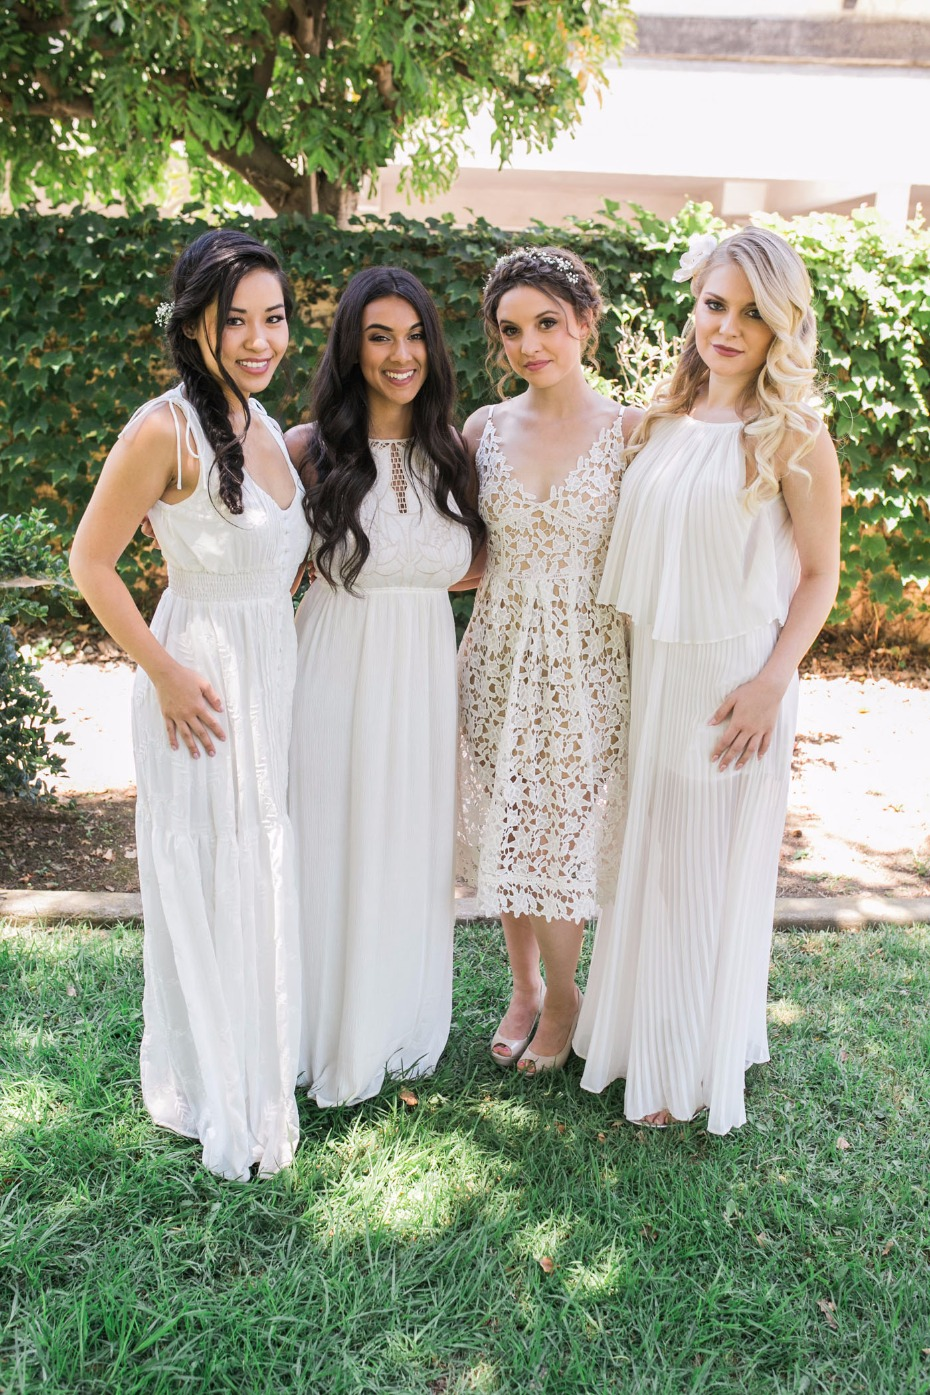 French picnic for bridesmaids in all white